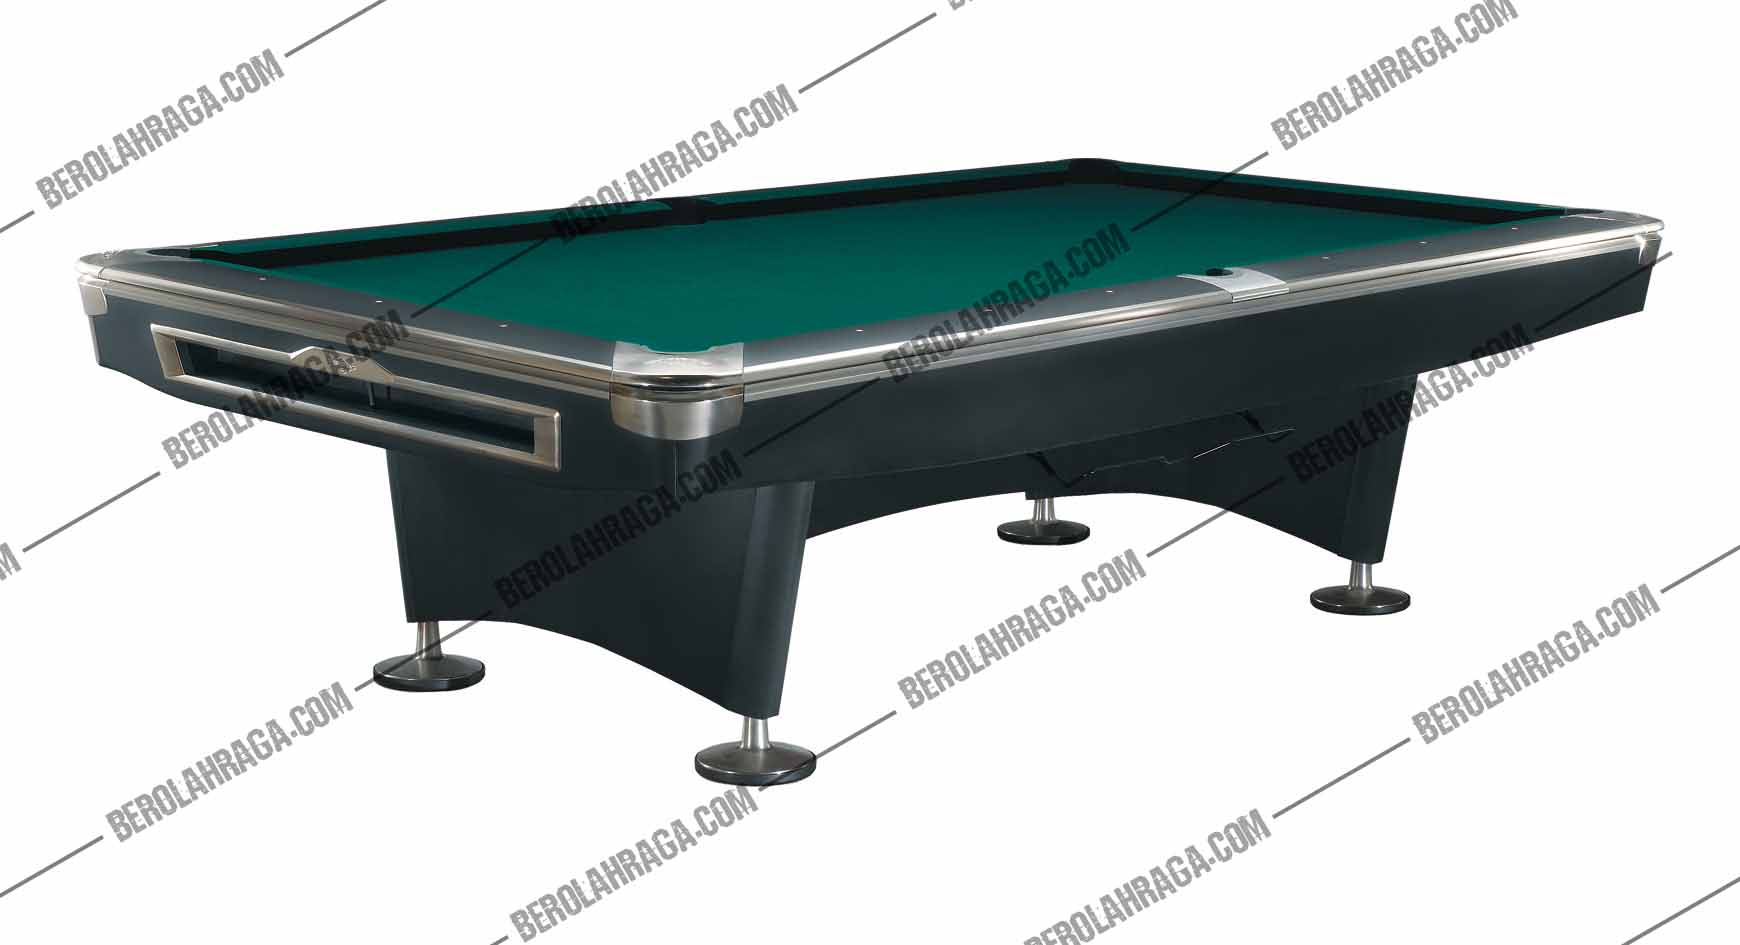 Murrey Meja Billiard Gold Crown V 9ft Word Standart Ekonomis.jpg